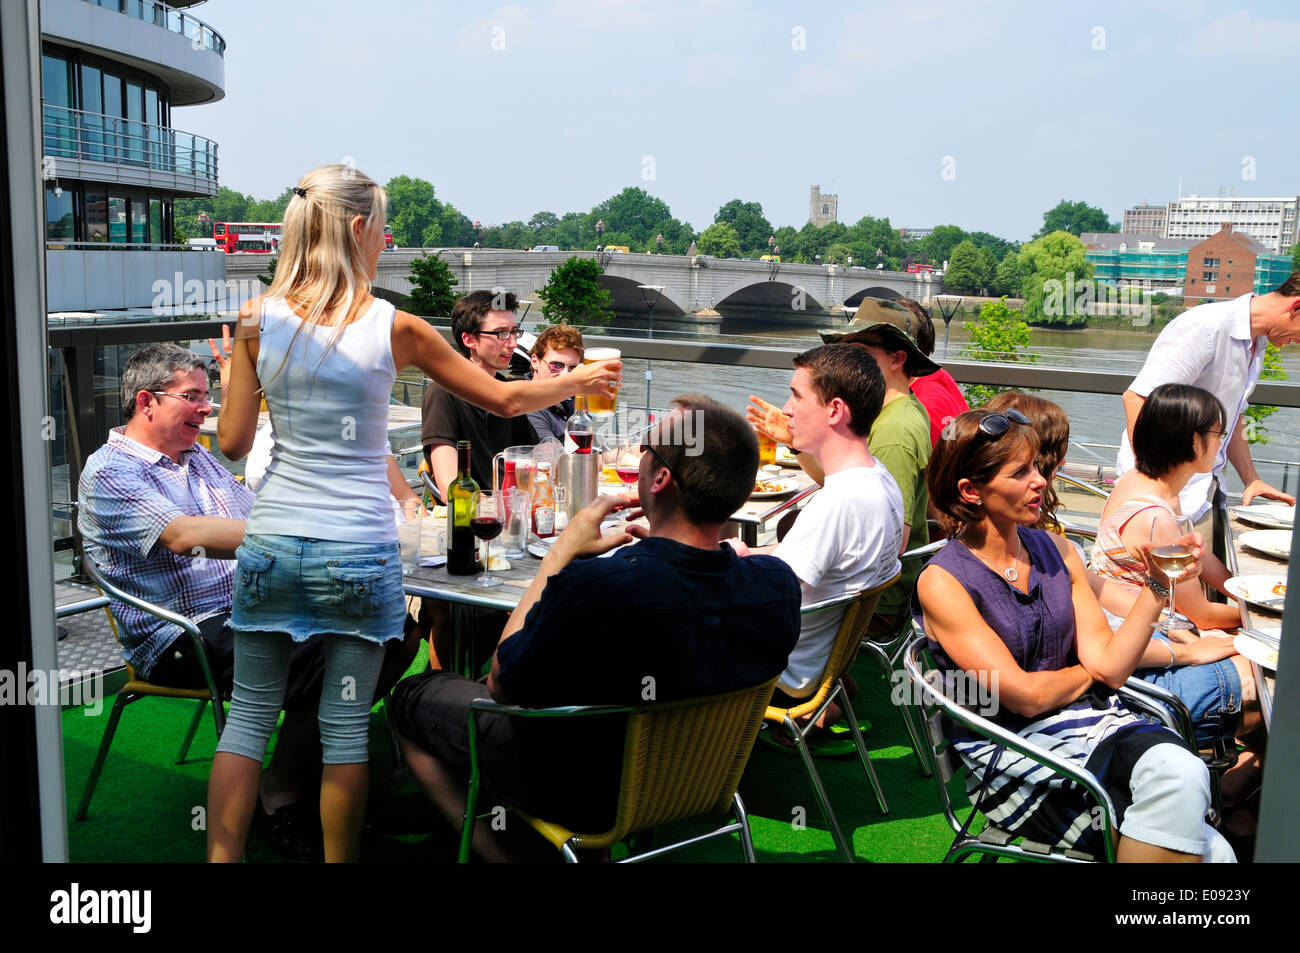 Drinkers on the balcony of The Boathouse pub, Putney, London, England - Stock Image